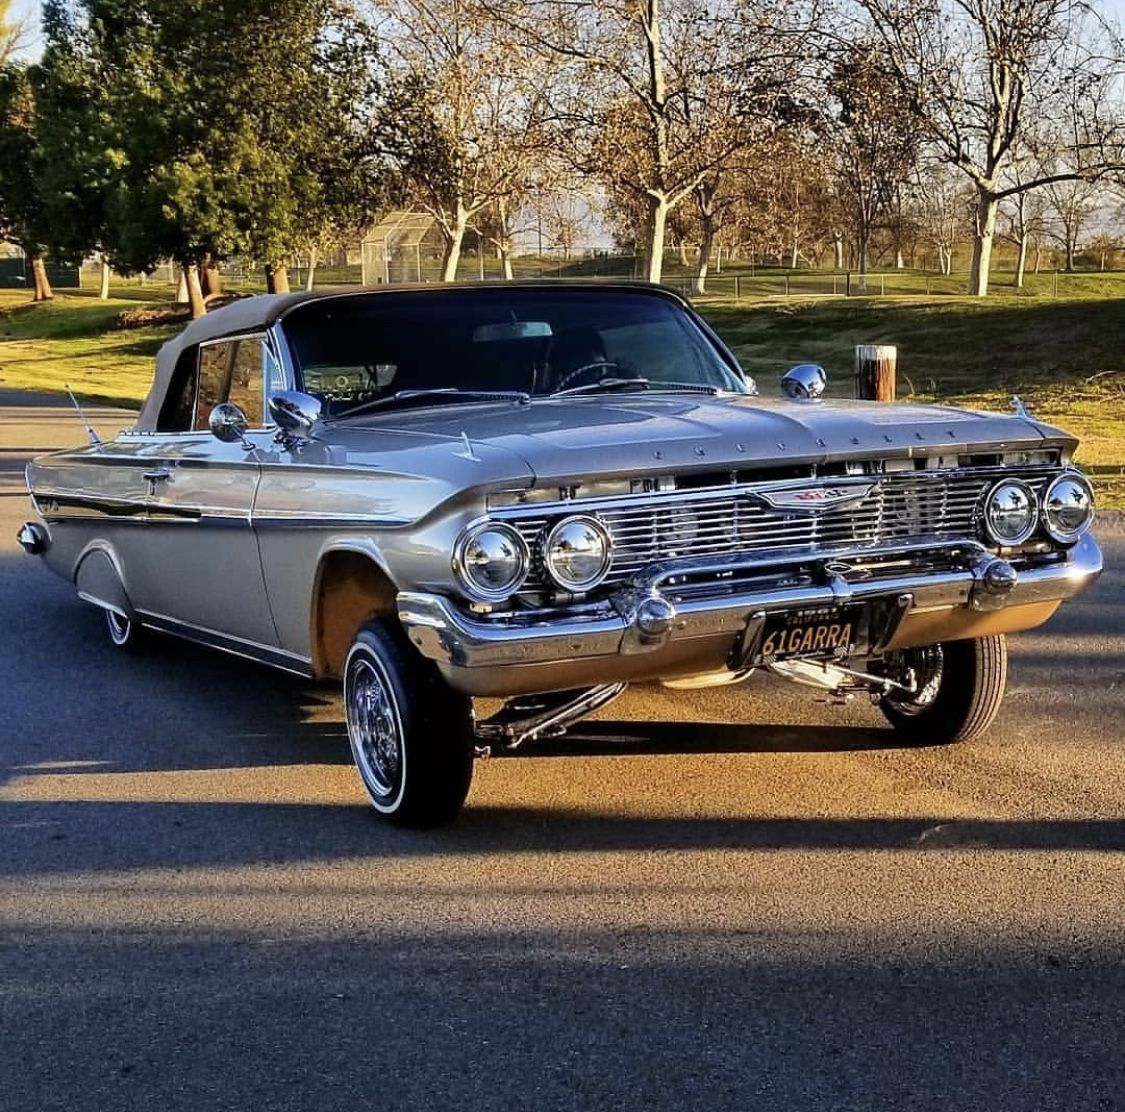 Pin By Fcking Lopez On Sundays 1961 Chevy Impala Lowriders Lowrider Cars